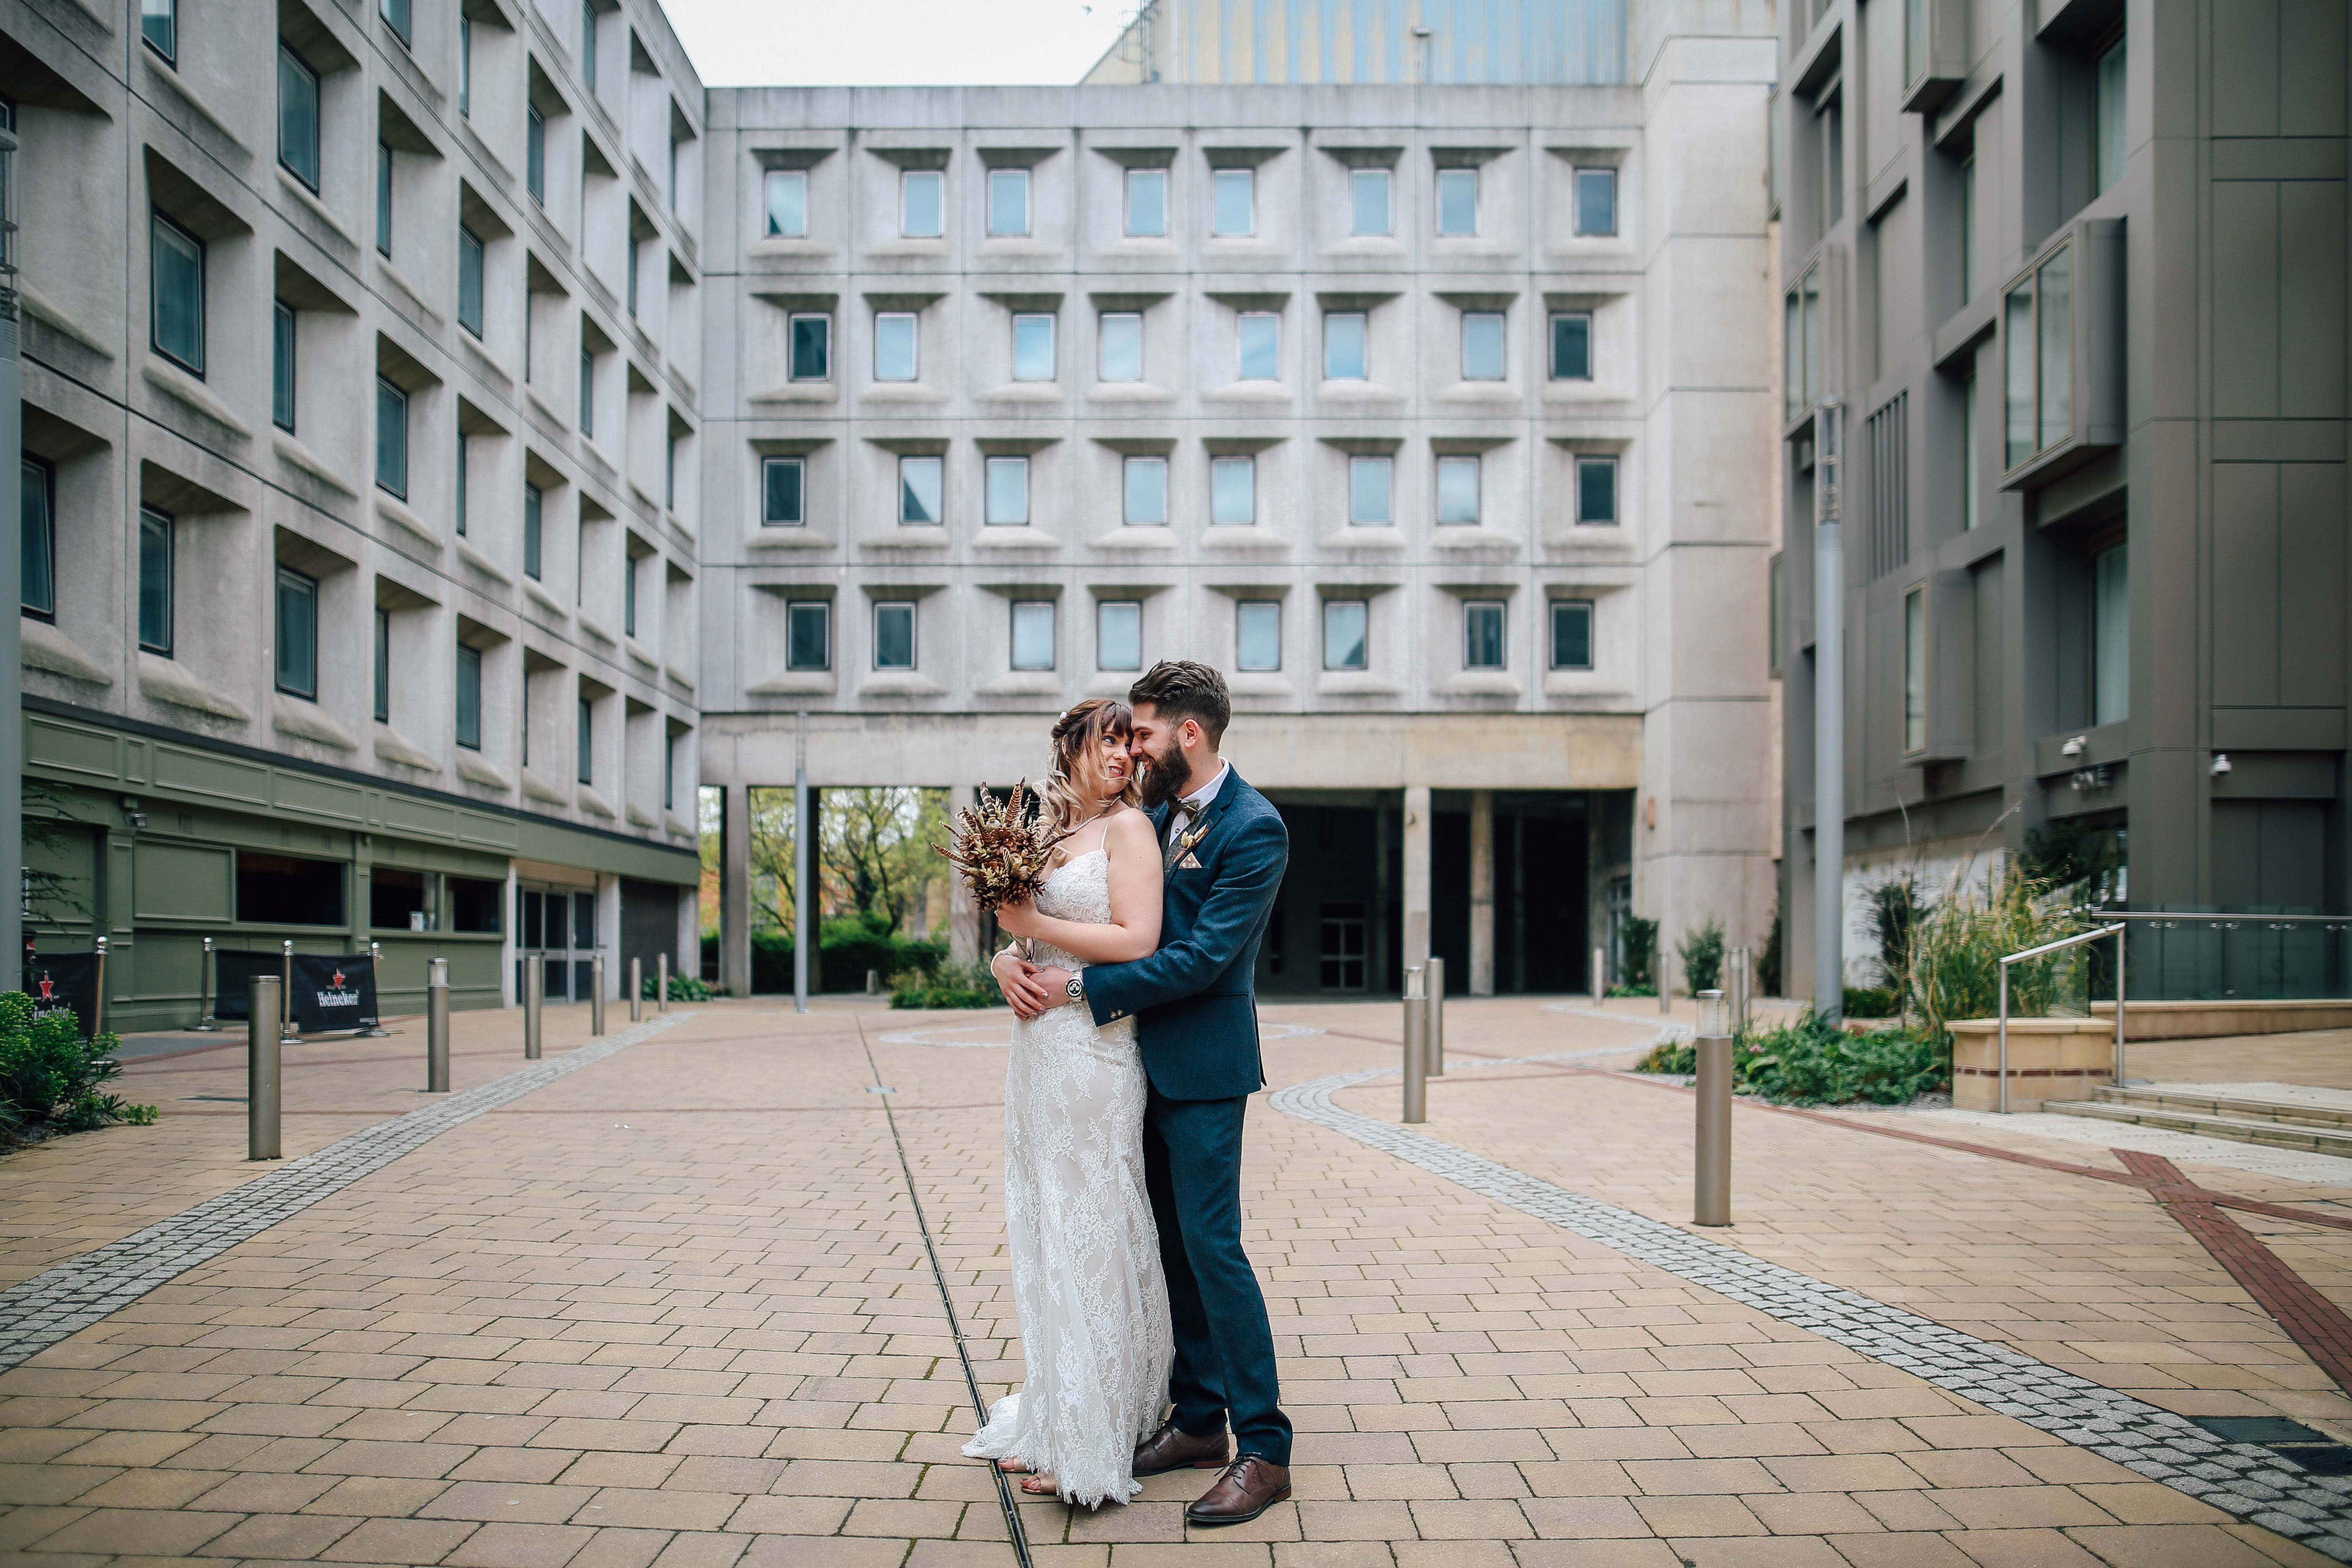 Bride and Groom Wedding Photographer Manchester